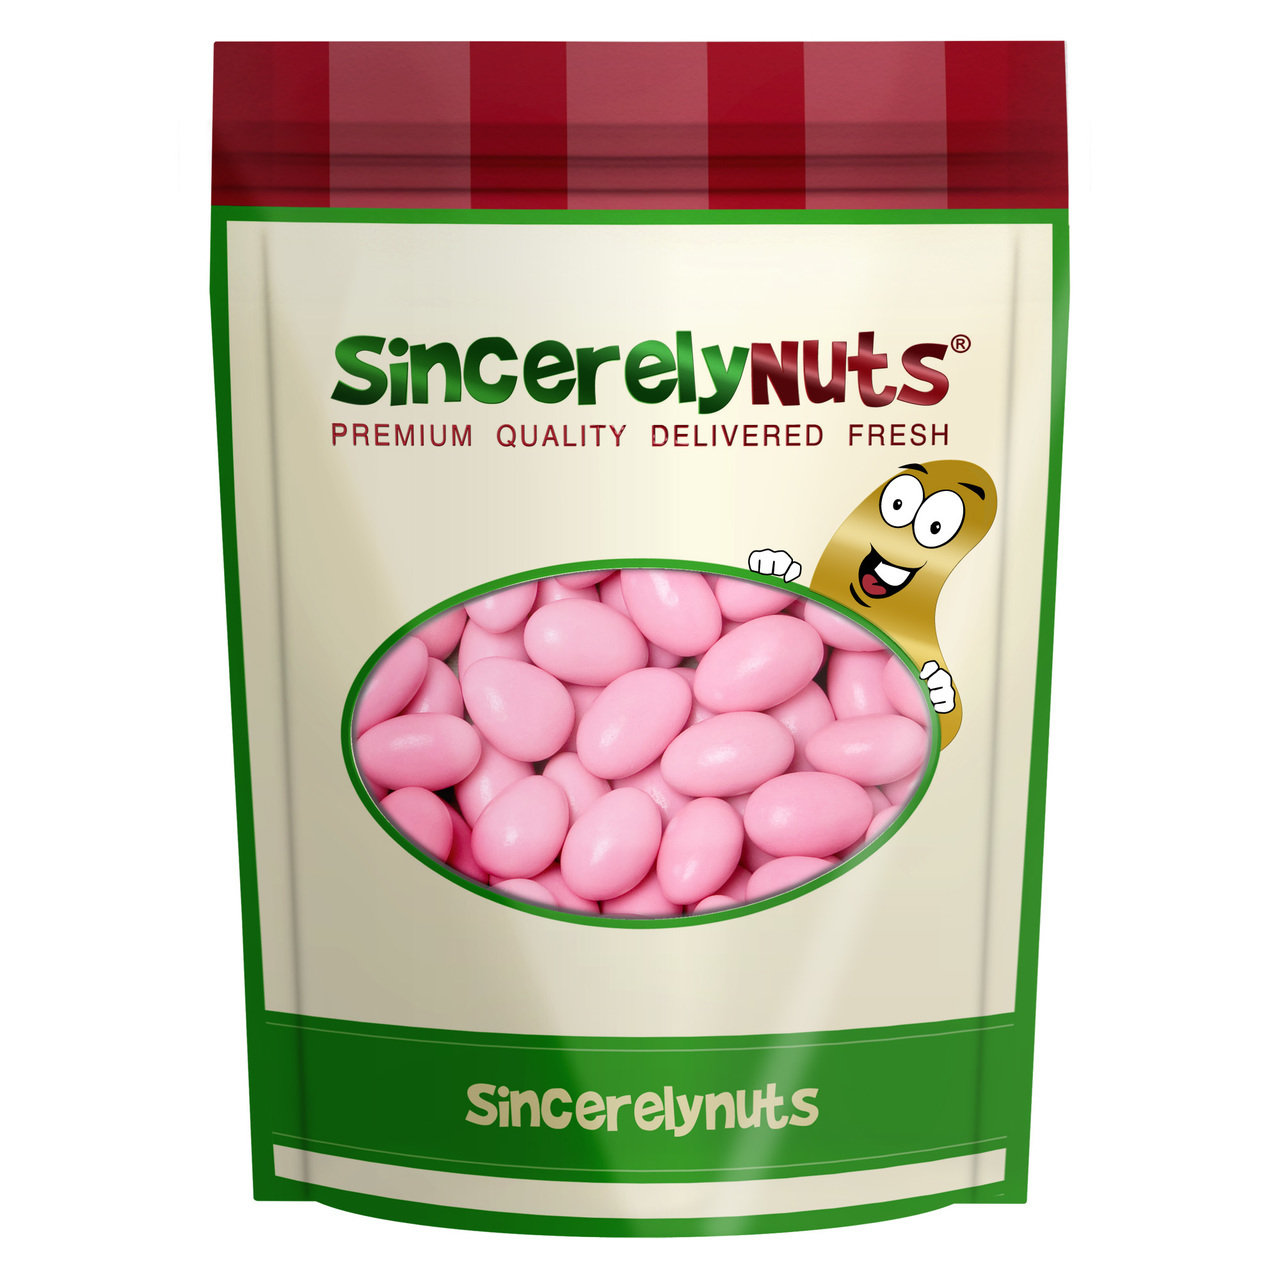 Sincerely Nuts Pink Jordan Almonds, 2 LB Bag